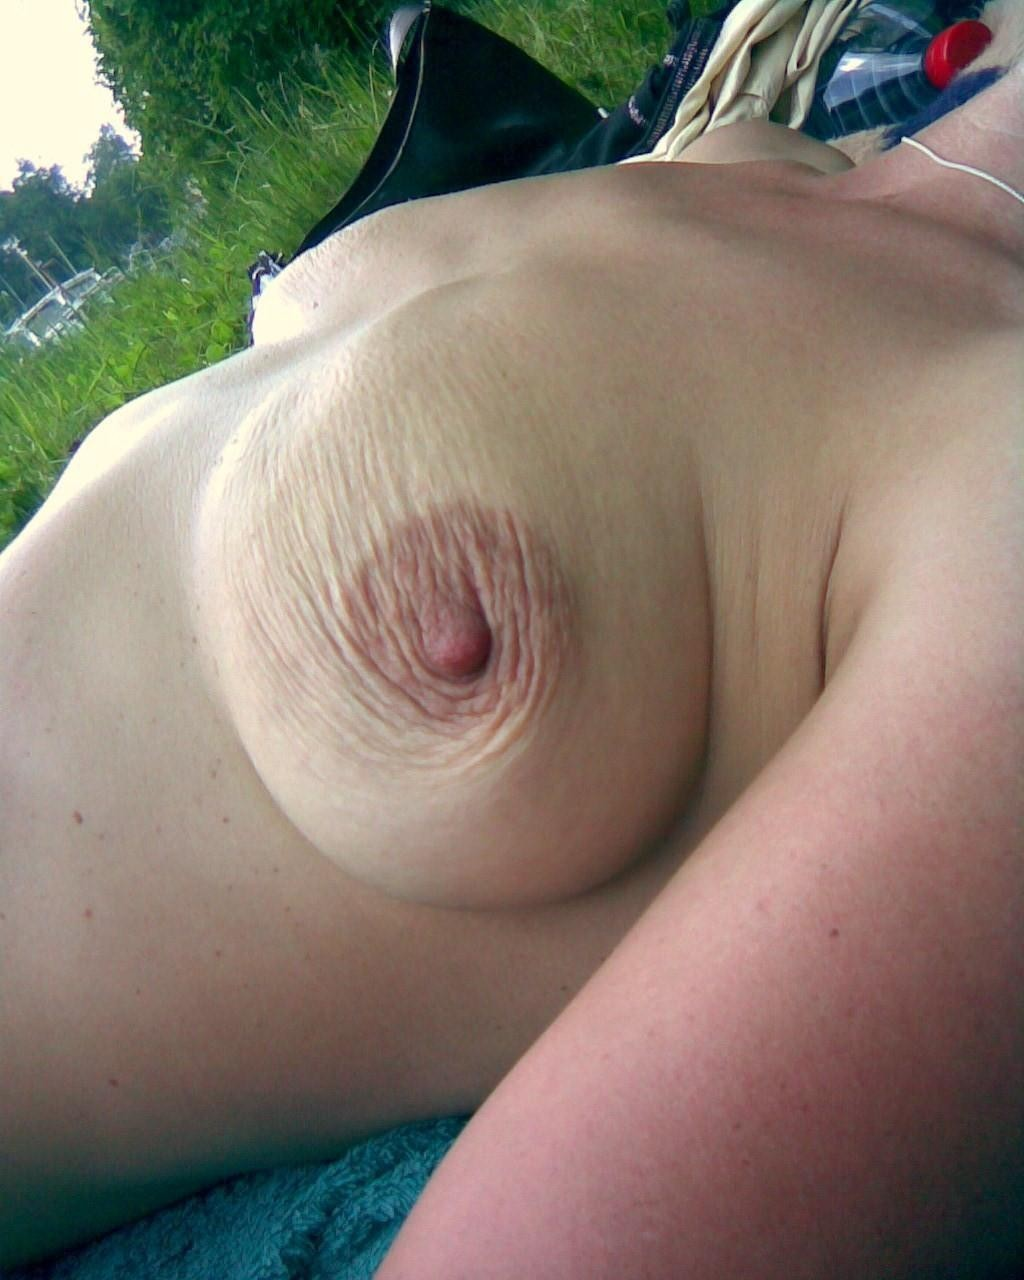 tits saggy Super empty